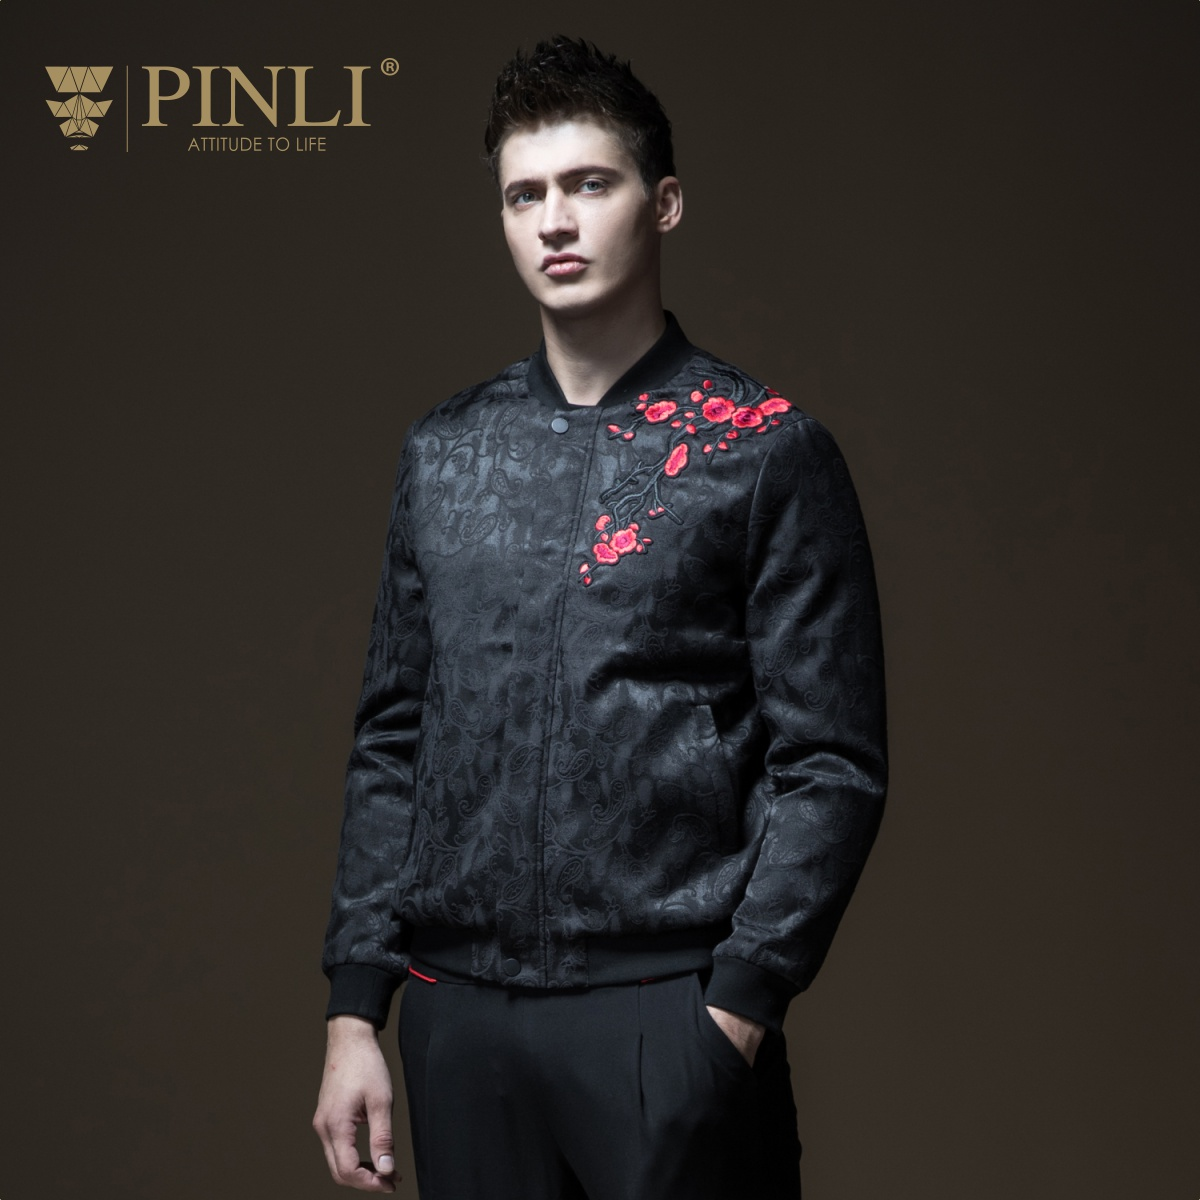 Winter Jacket Men Top New Pinli Product Made Fall 2018 Men's Clothing Baseball Cotton Jacquard Sports Coat Boom B183505369